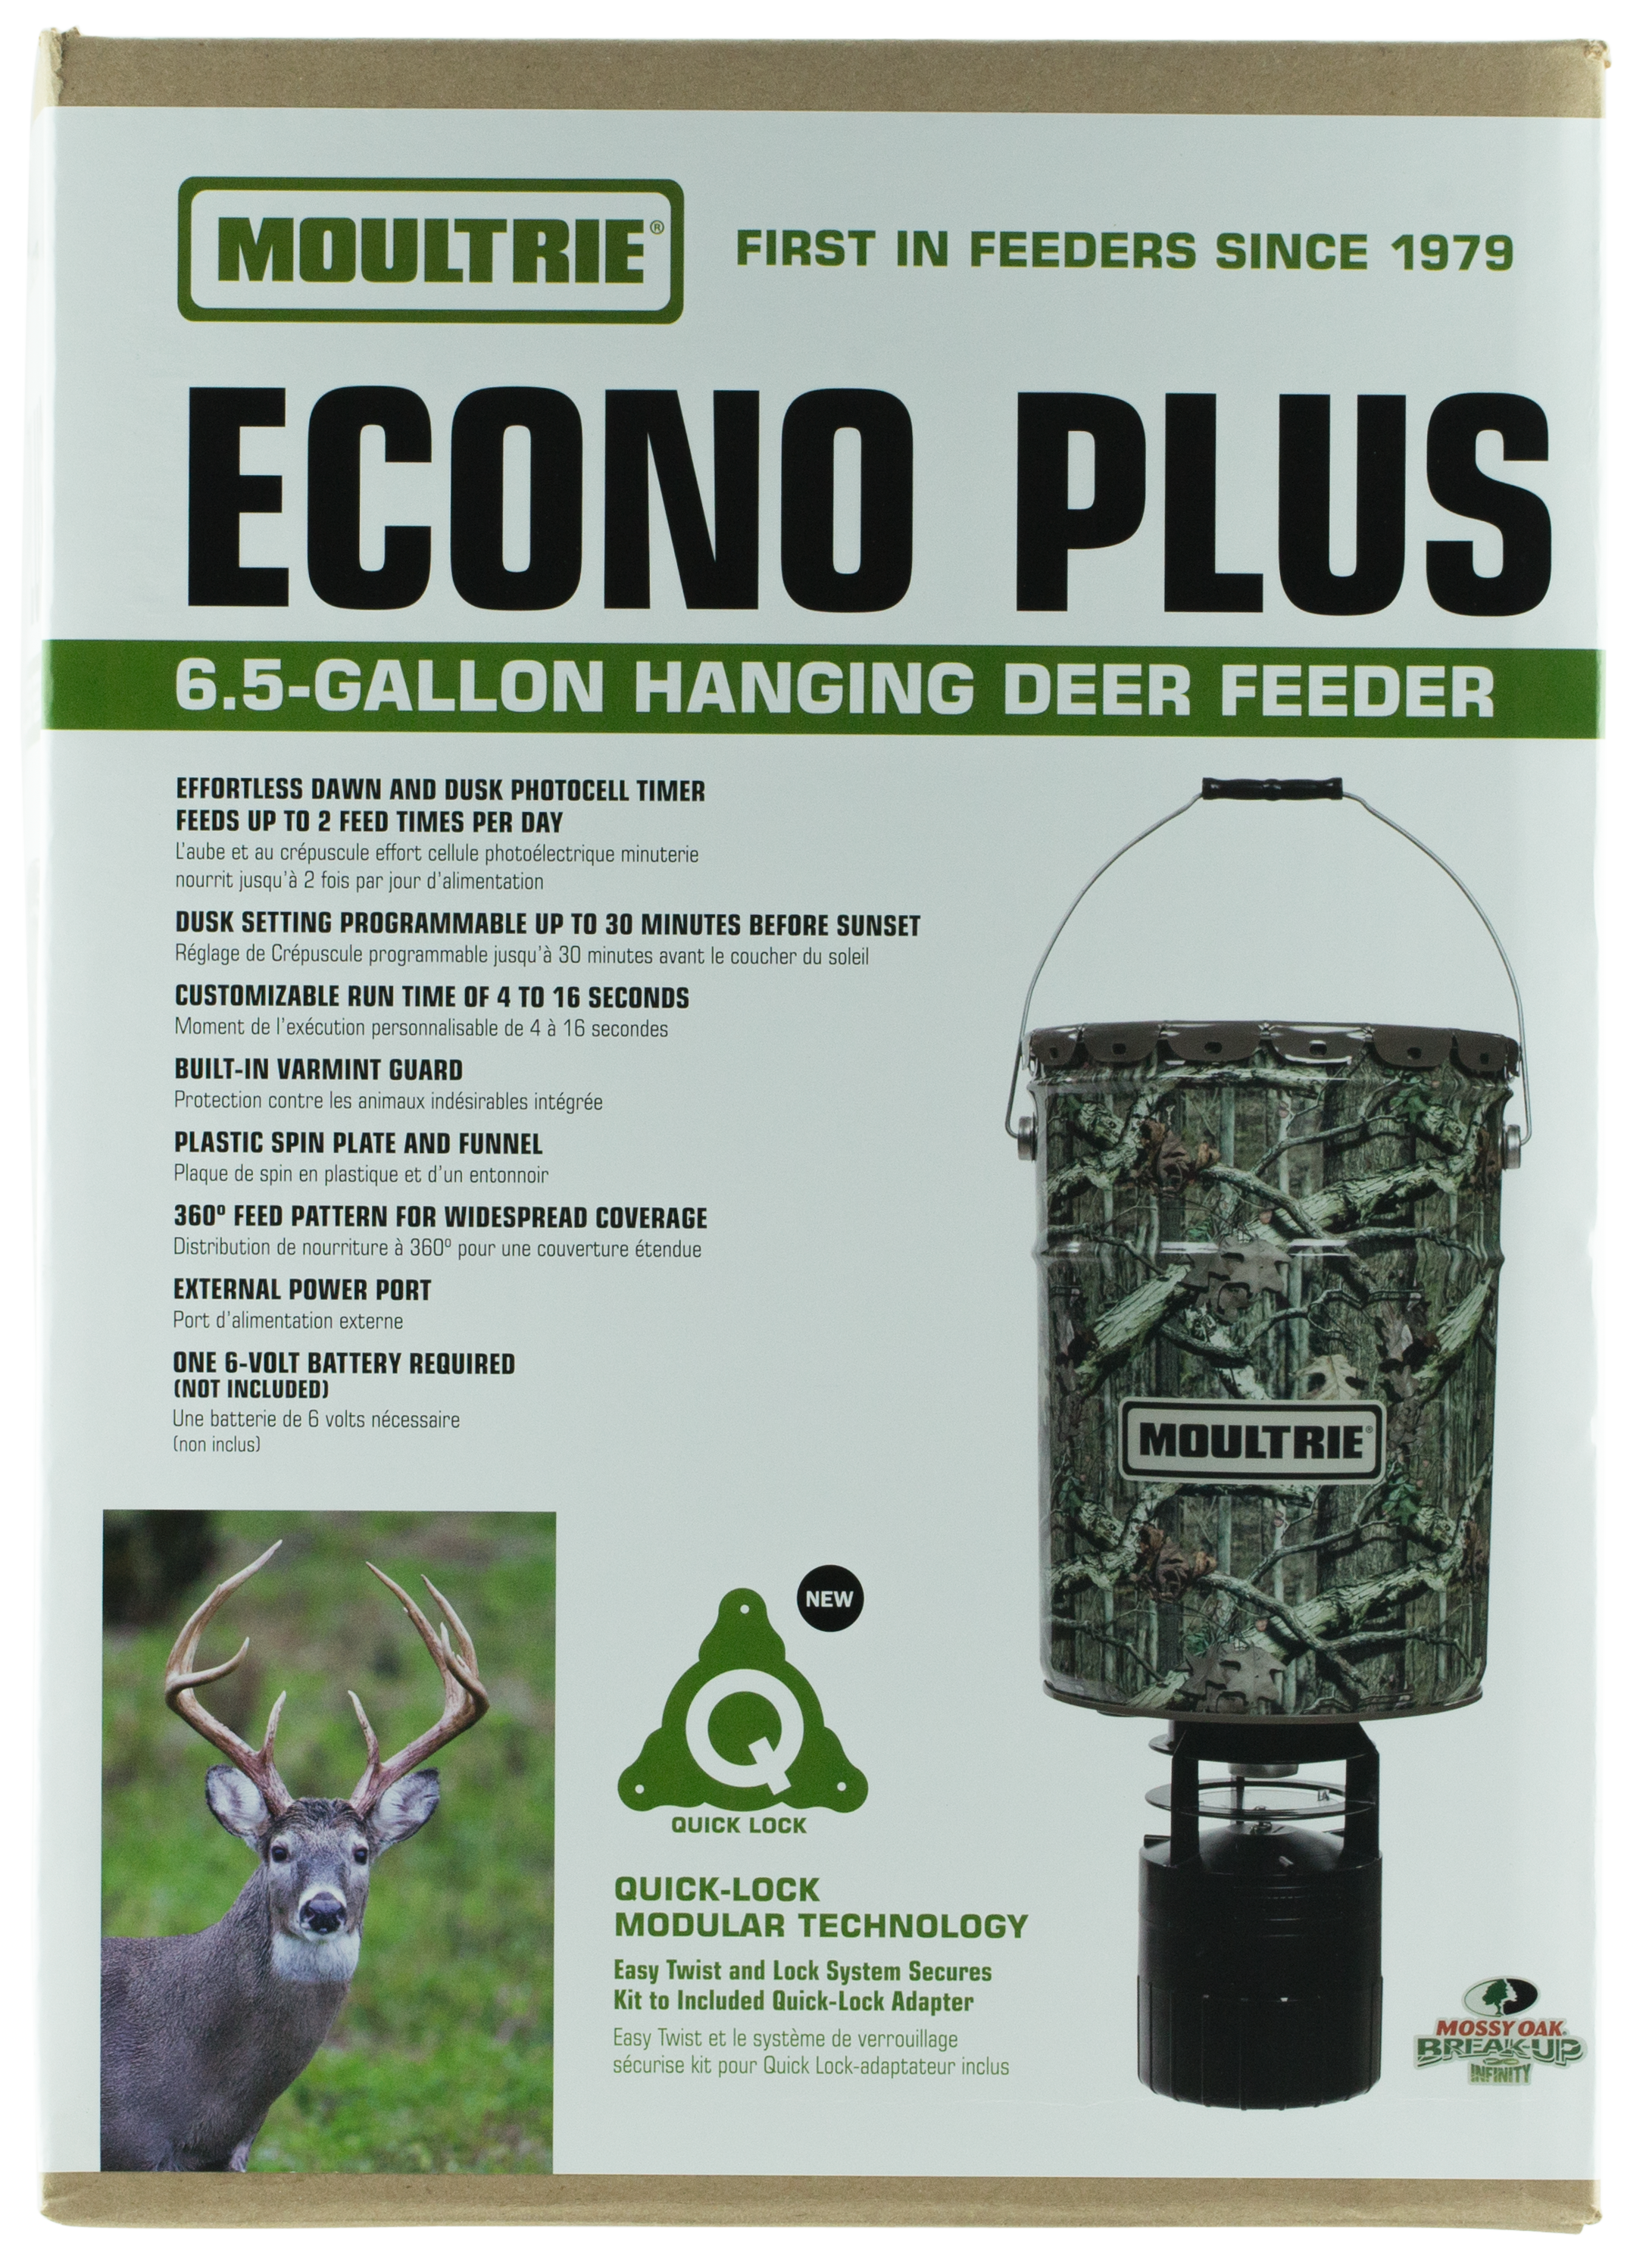 plus out flat gallon econo feeder mobui feeders moultrie hanging deer index